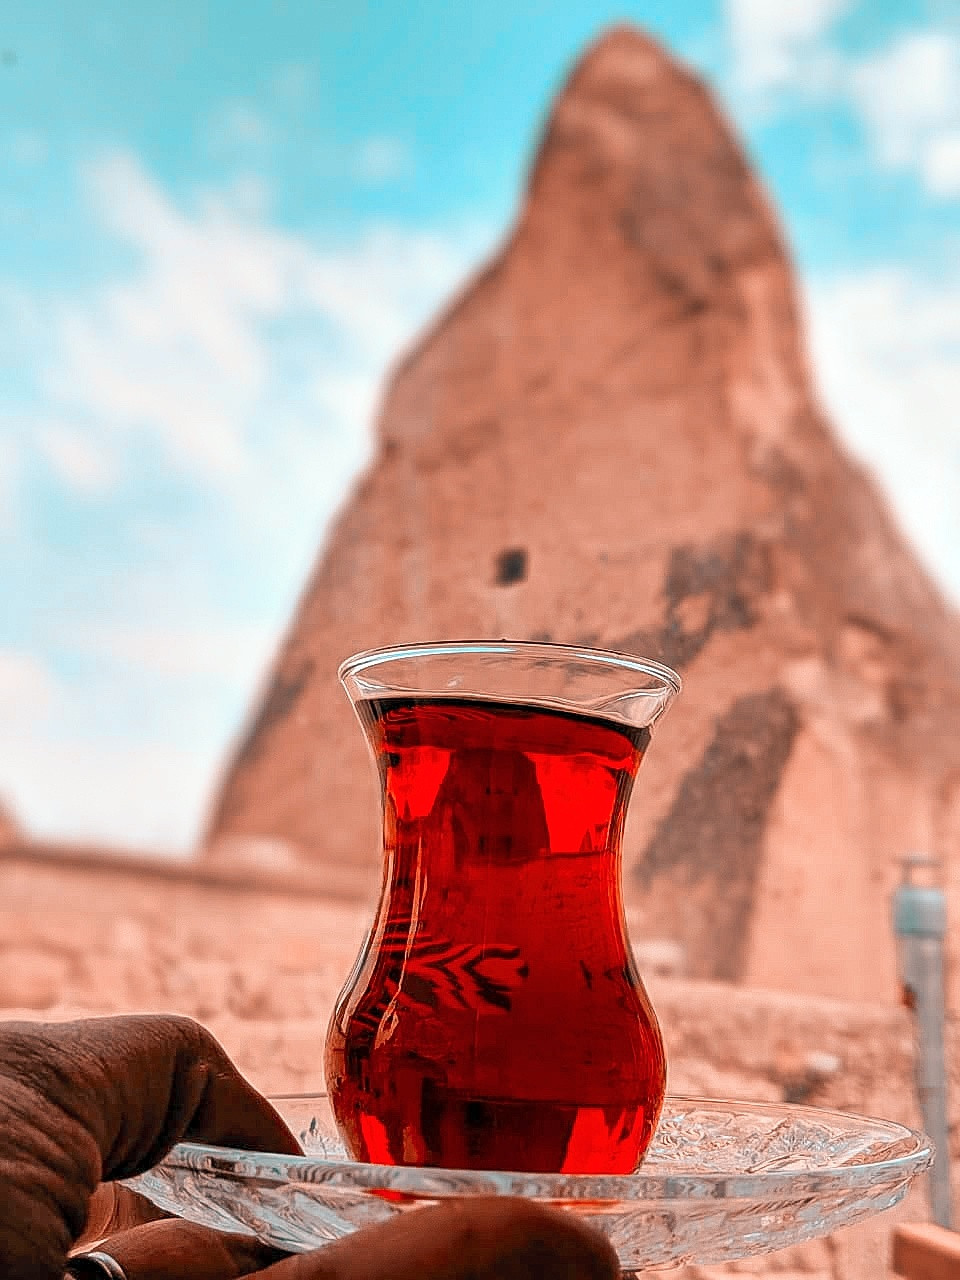 cappadocia | kapadokya | travel blogger | travel blog | blogger | love valley | red valley |rose valley | hot air balloon | travel photography | beautiful destination | tripotocommunity | trip advisor | turkey | turkey tourism | visit turkey | turkey travels | turkey igers | turkey shots | beautiful photographers | team pixel | google pixel | travel couple | couple blog | that nomadcouple | dr. nishita | dr. siddharth | couple who travels around the world | cave hotels | cave hotels in cappadocia | cave hotels at night | turkish tea | turkish tea cups |